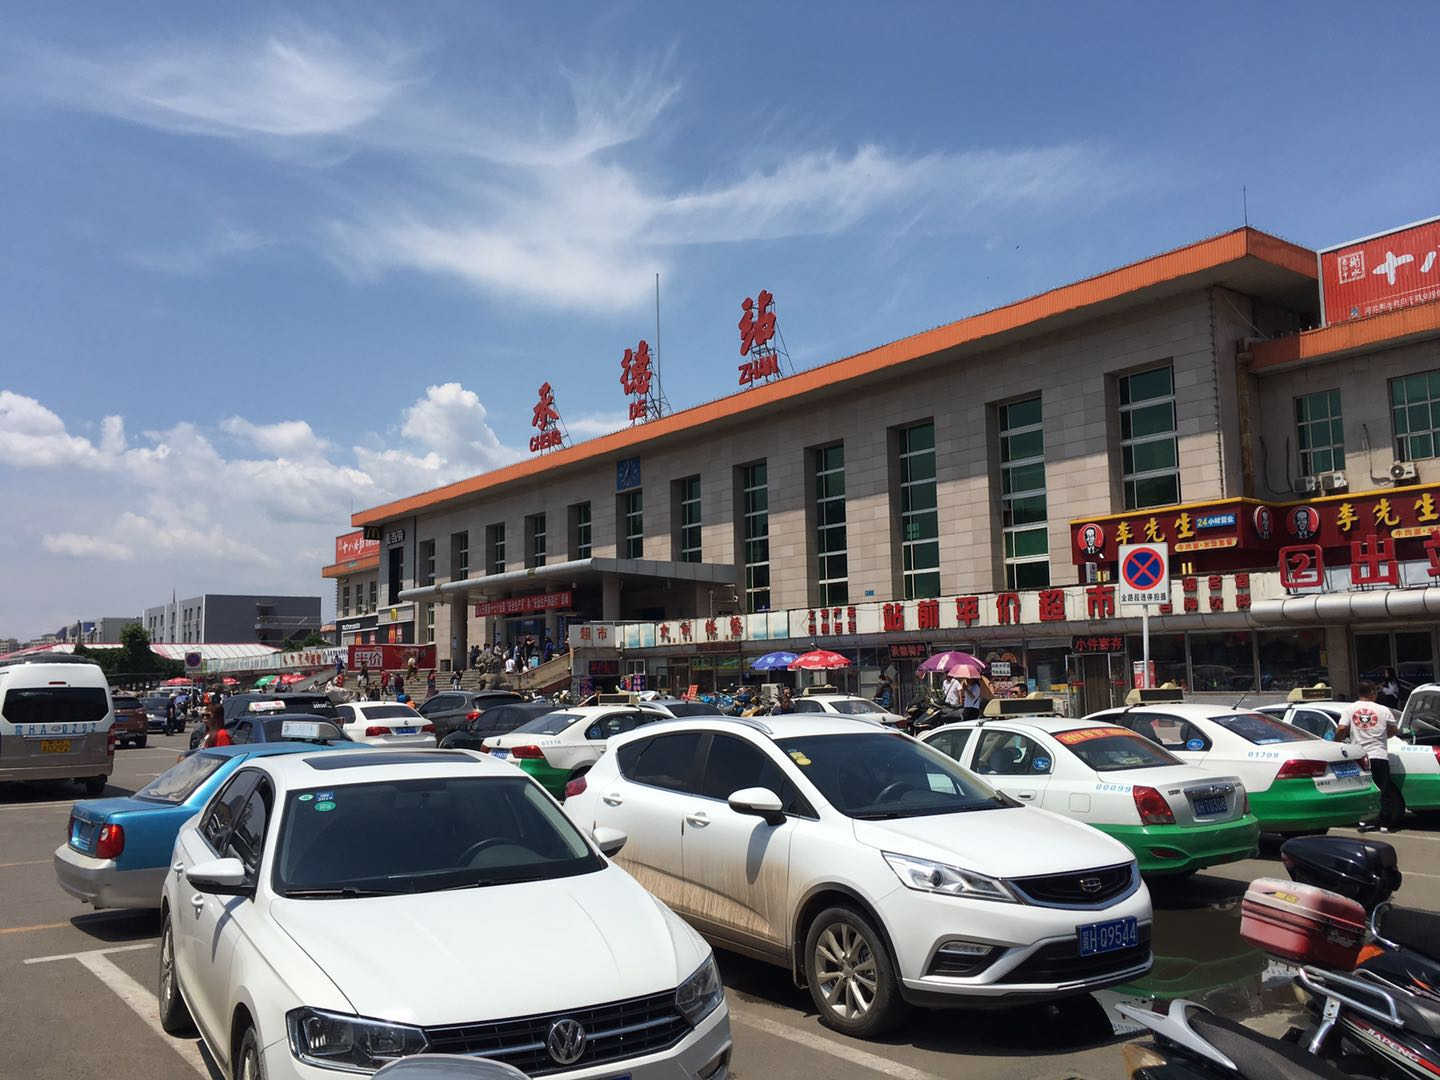 Cars parked outside Chengde train station